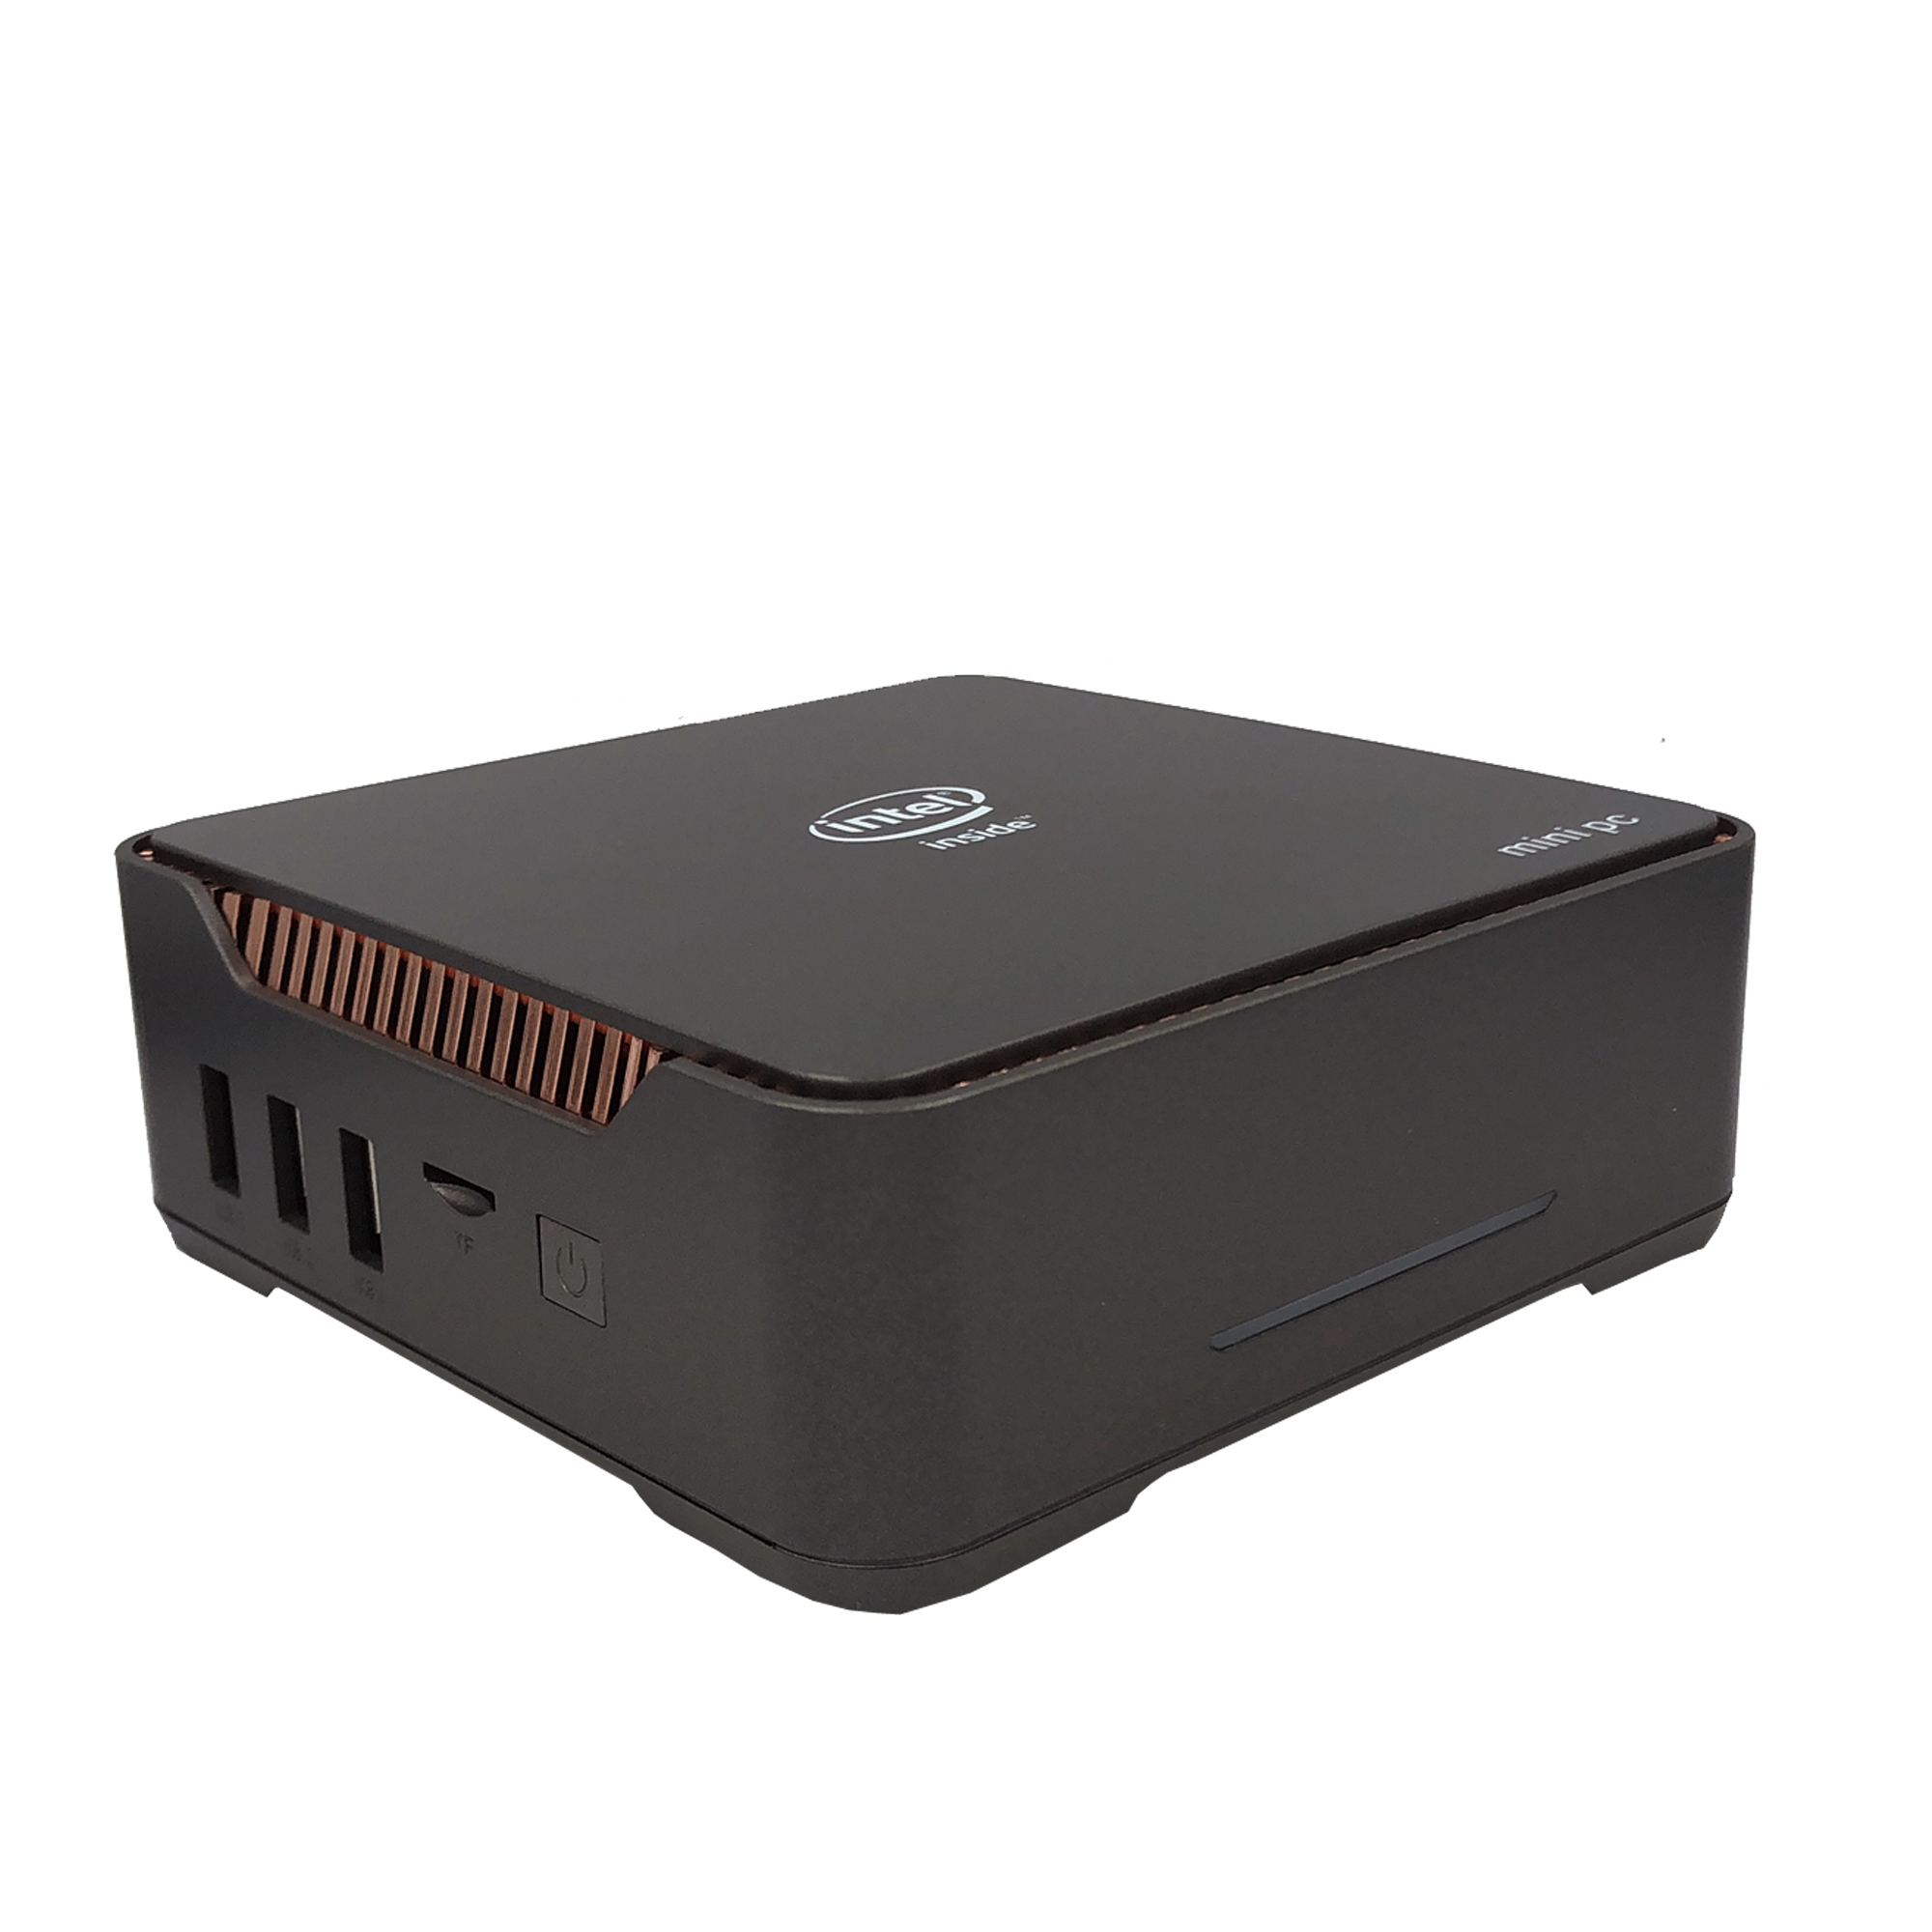 AK3V Mini PC Intel Celeron J3455 6GB 64GB Windows 10 with Microphone Cortana Extended HDD dual